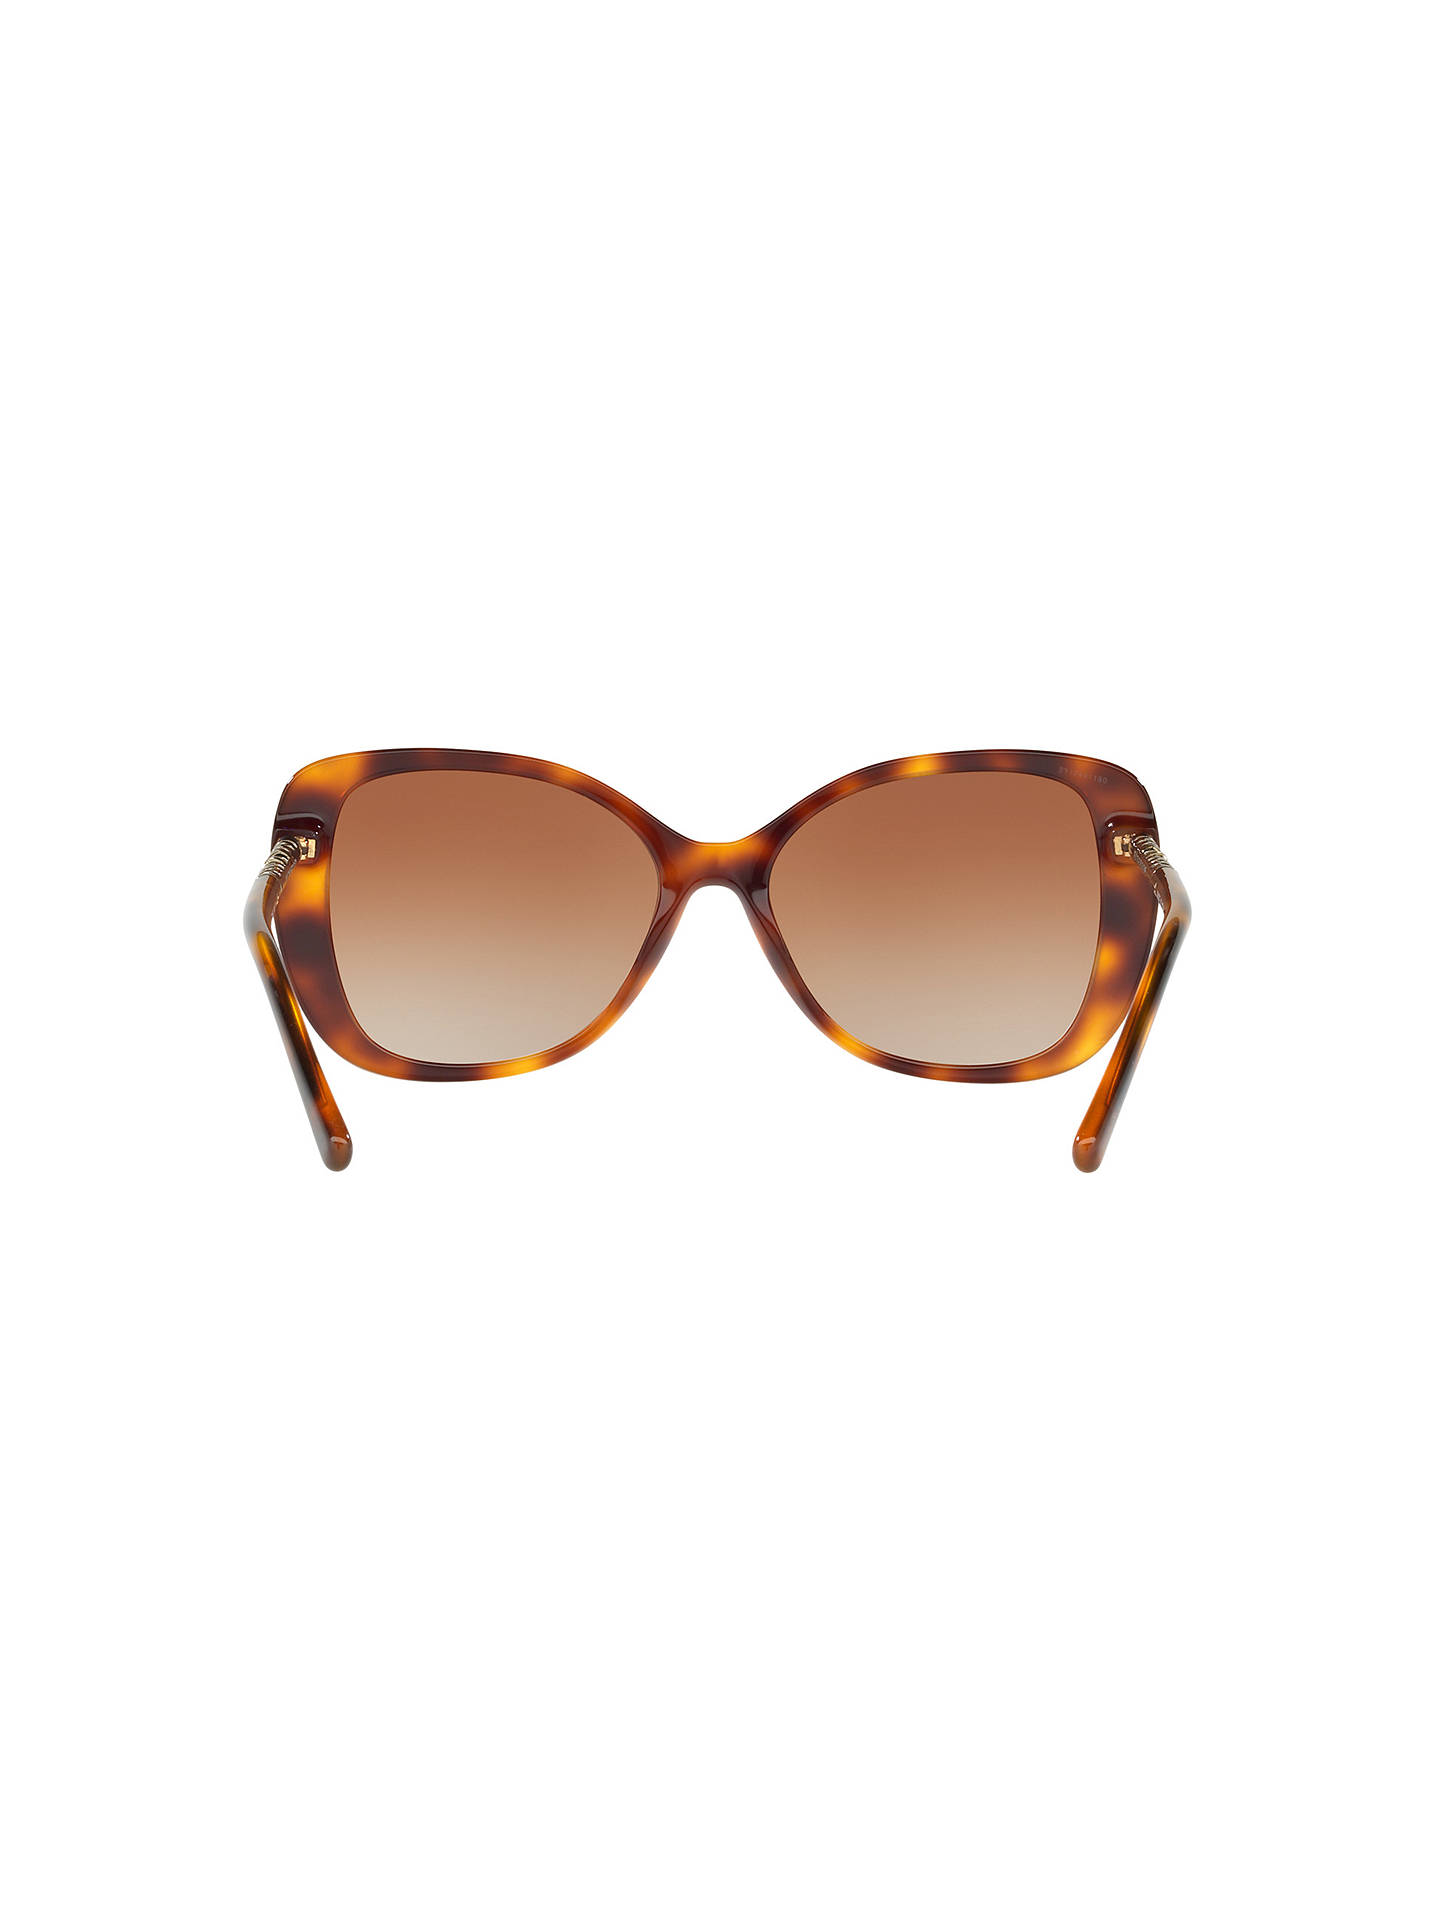 Buy Burberry BE4238 Cat's Eye Sunglasses, Tortoise/Brown Gradient Online at johnlewis.com